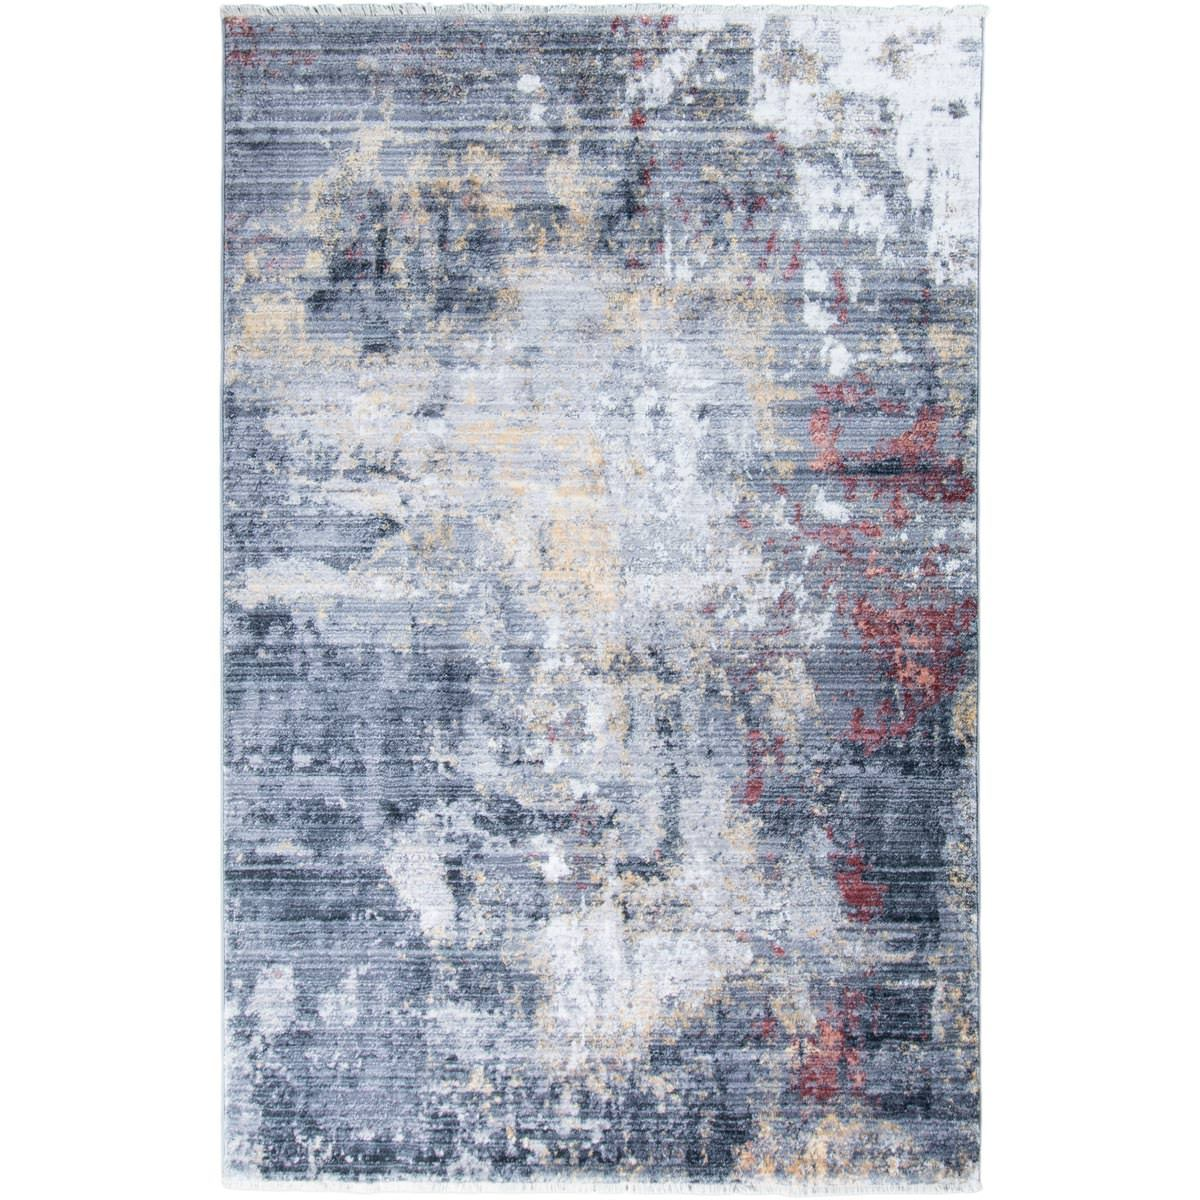 Istanbul Rug 02 Grey/Yellow/Orange 1